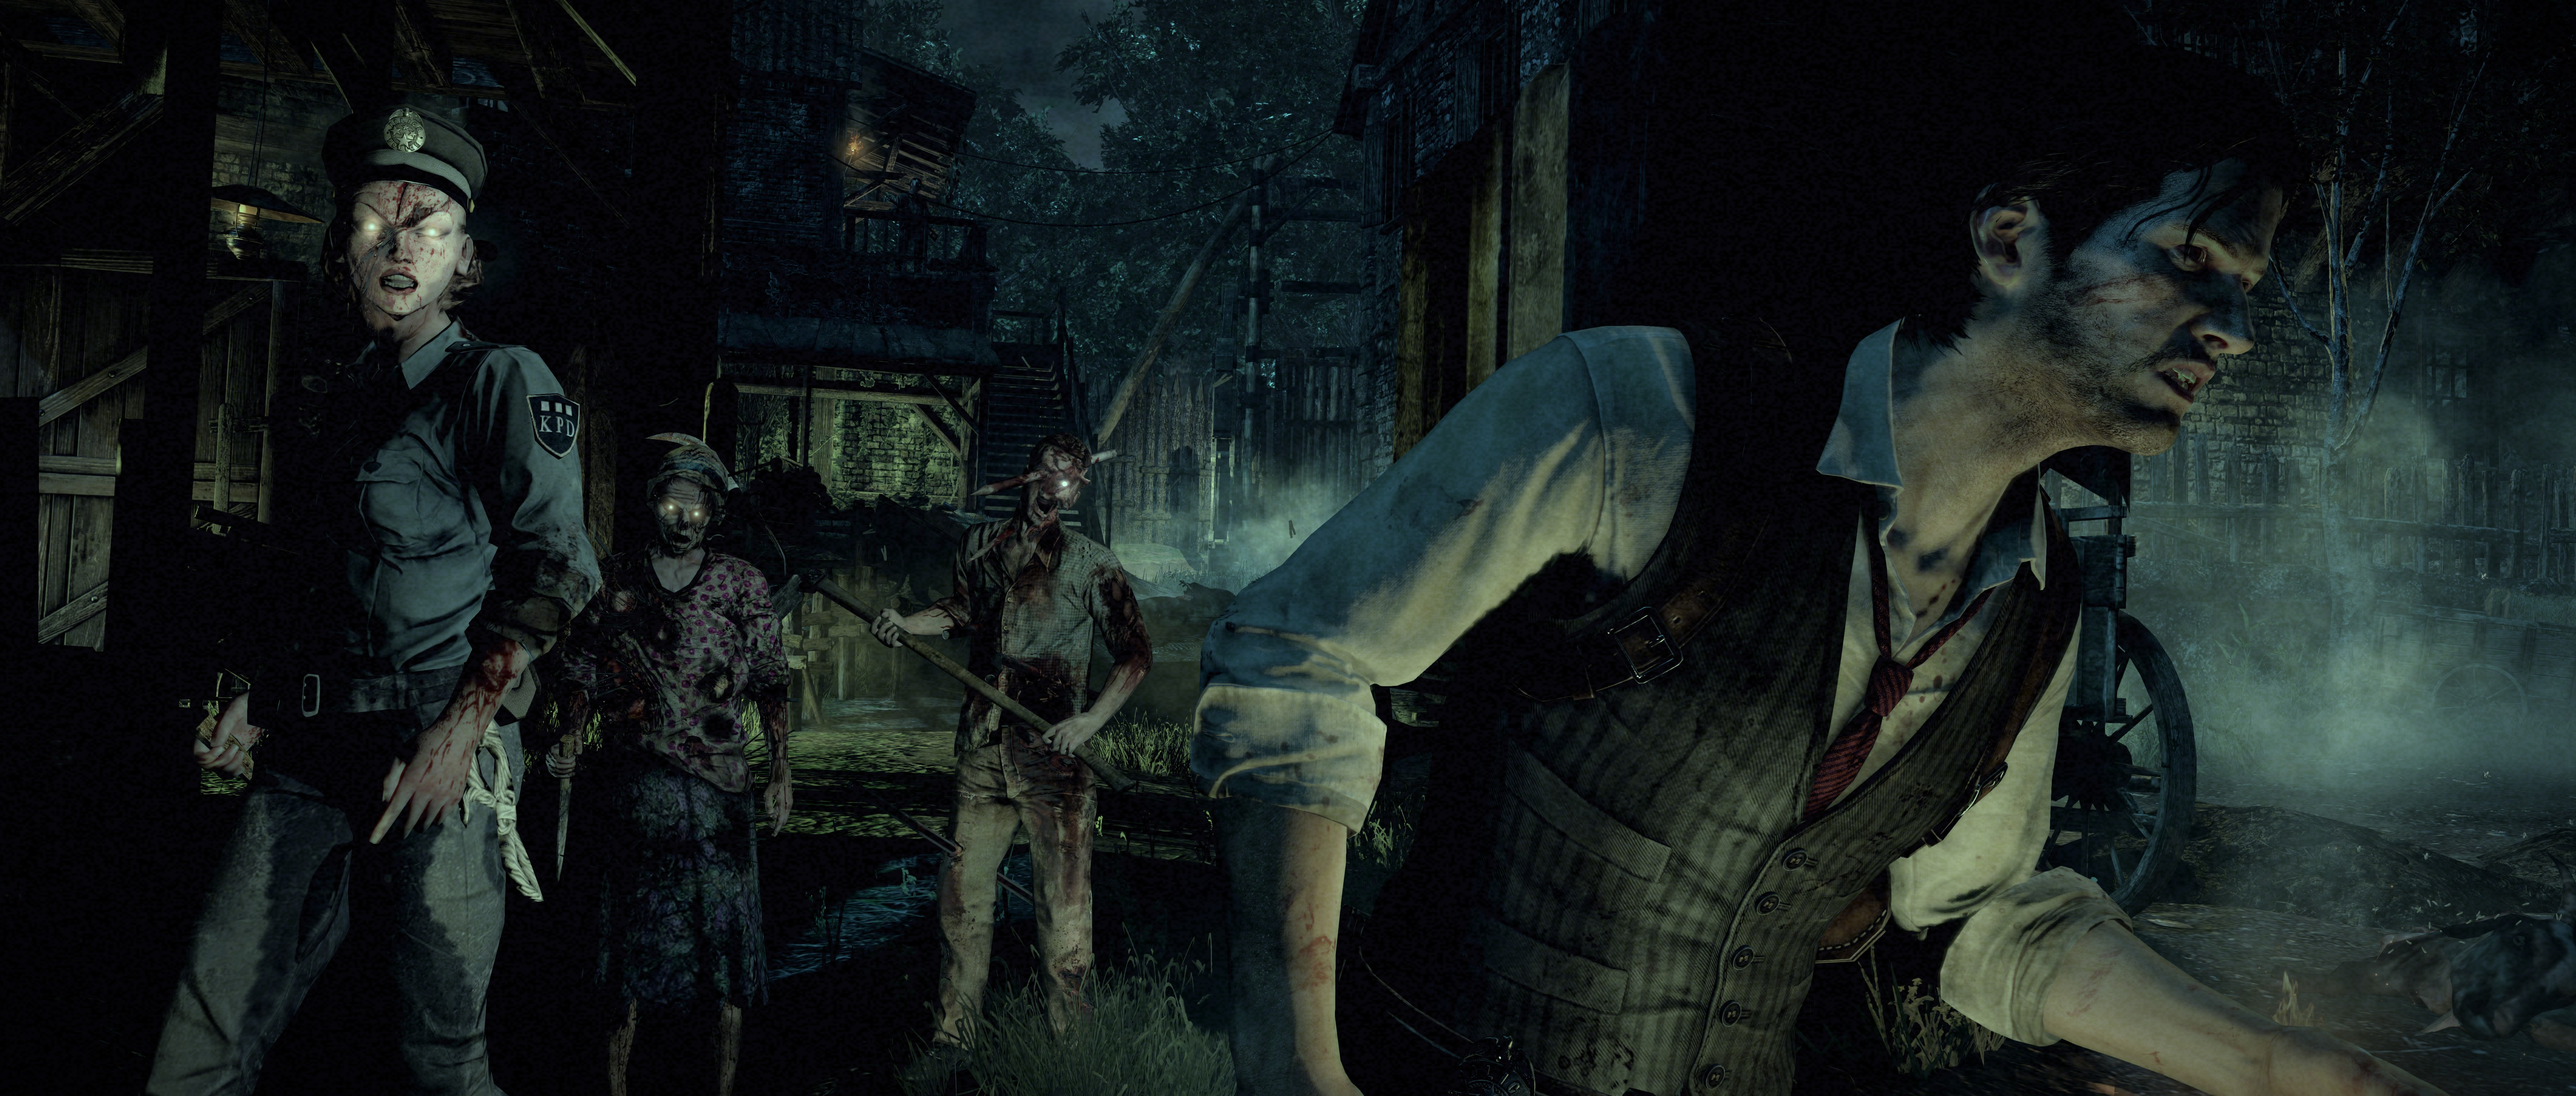 The Evil Within Wallpapers Or Desktop Backgrounds: The Evil Within 5k Retina Ultra HD Wallpaper